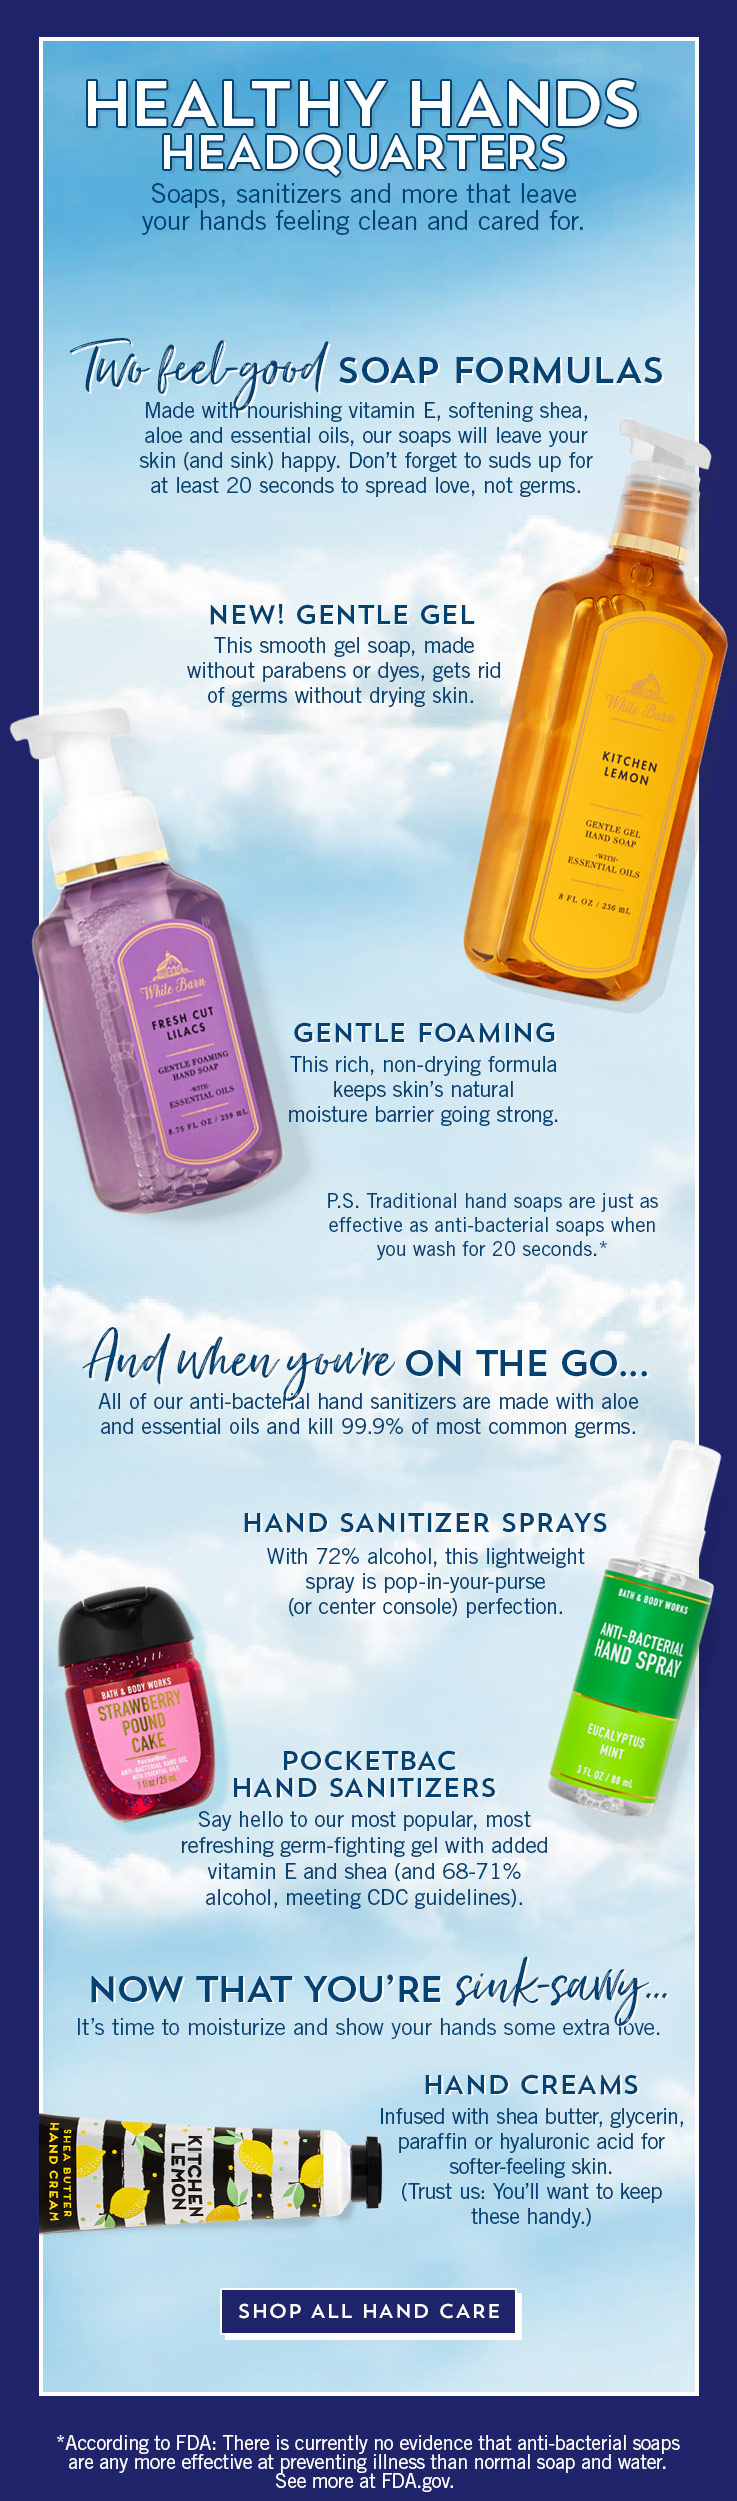 Healthy Hands Headquarters. Soaps, sanitizers and more that leave your hands feeling clean and cared for. Made with nourishing vitamin E, softening shea, aloe and essential oils, our soaps will leave your skin (and sink) happy. Don't forget to suds up for at least 20 seconds to spread love, not germs. New gentle gel: This smooth gel soap, made without parabens or dyes, gets rid of germs without drying skin. Gentle foaming: This rich, non-drying formula keeps skin's natural moisture barrier going strong. P.S. Traditional hand soaps are just as effective as anti-bacterial soaps when you wash for 20 seconds* And when you're on the go… All of our anti-bacterial hand sanitizers are made with aloe and essential oils and kill 99.9% of most common germs. PocketBac hand sanitizers: Say hello to our most popular, most refreshing germ-fighting gel with added vitamin E and shea (and 68-71% alcohol, meeting CDC guidelines). Hand sanitizer sprays: With 72% alcohol, this lightweight spray is pop-in-your-purse (or center console) perfection. Now that you're sink-savvy… it's time to moisturize and show your hands some extra love. Hand creams: Infused with shea butter, glycerin, paraffin or hyaluronic acid for softer-feeling skin. (Trust us: You'll want to keep these handy.) Shop all hand care. *According to FDA: There is currently no evidence that anti-bacterial soaps are any more effective at preventing illness than normal soap and water. See more at FDA.gov.